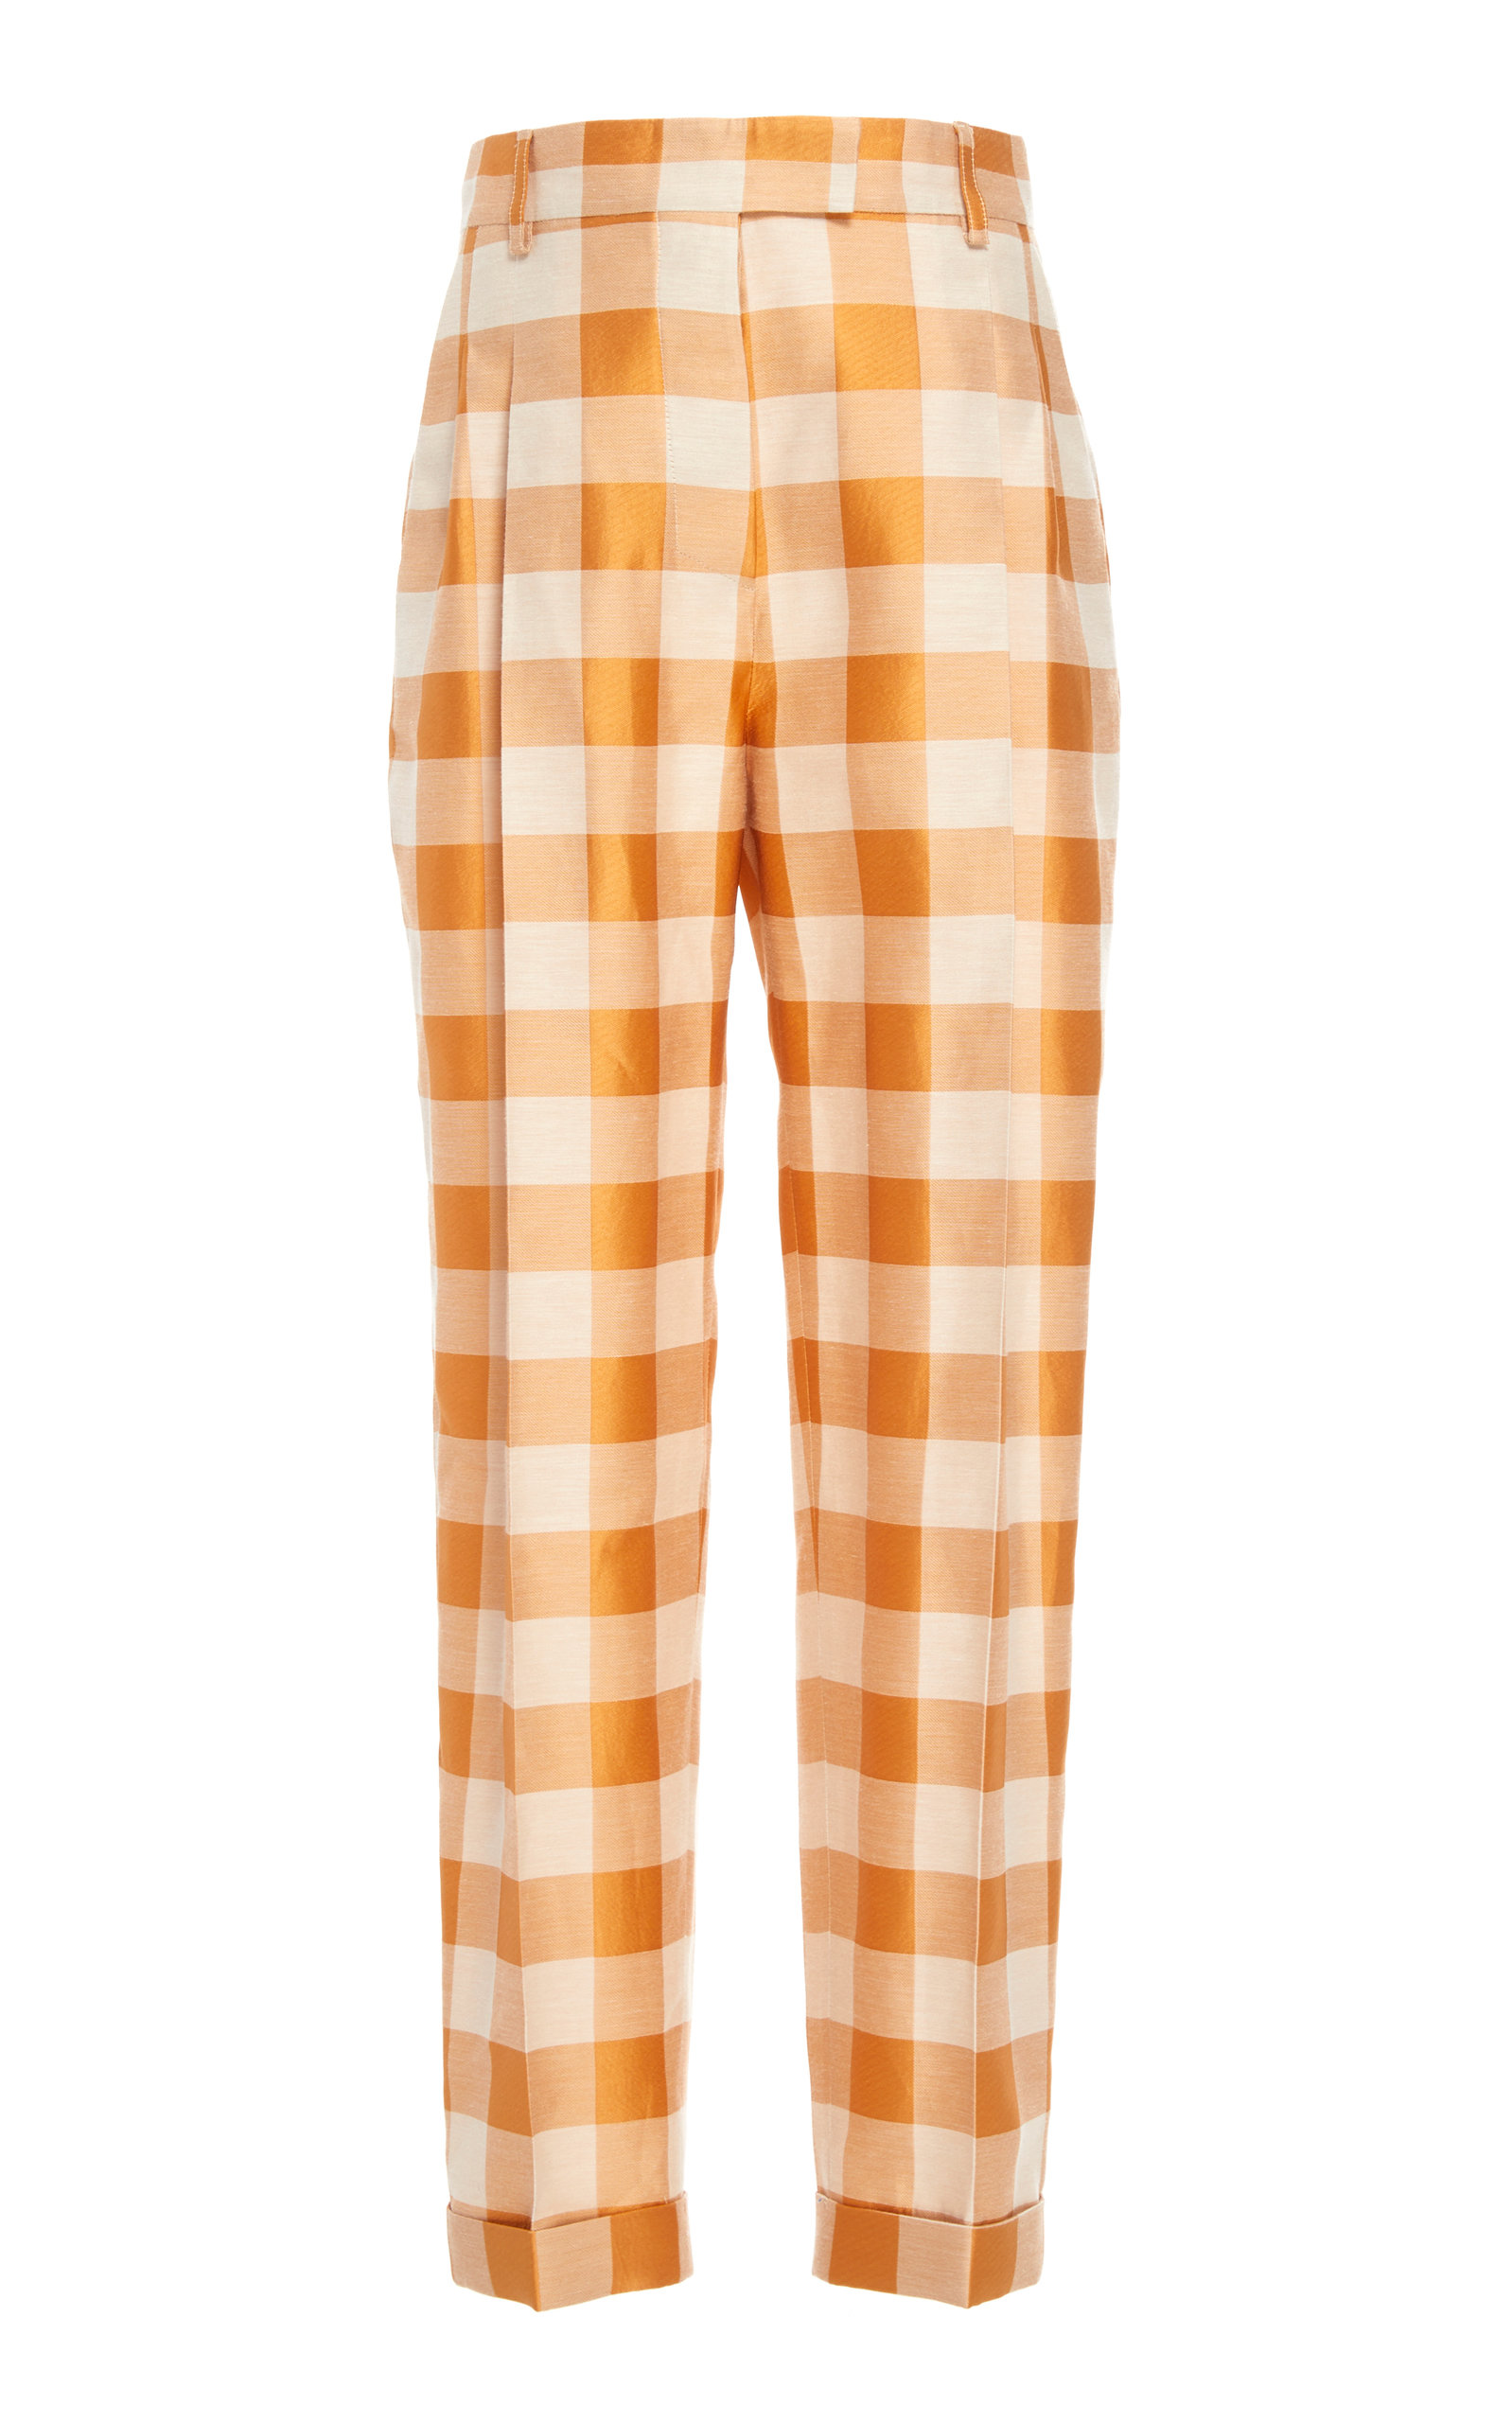 Omar Plaid Straight Leg Pant by Brock Collection